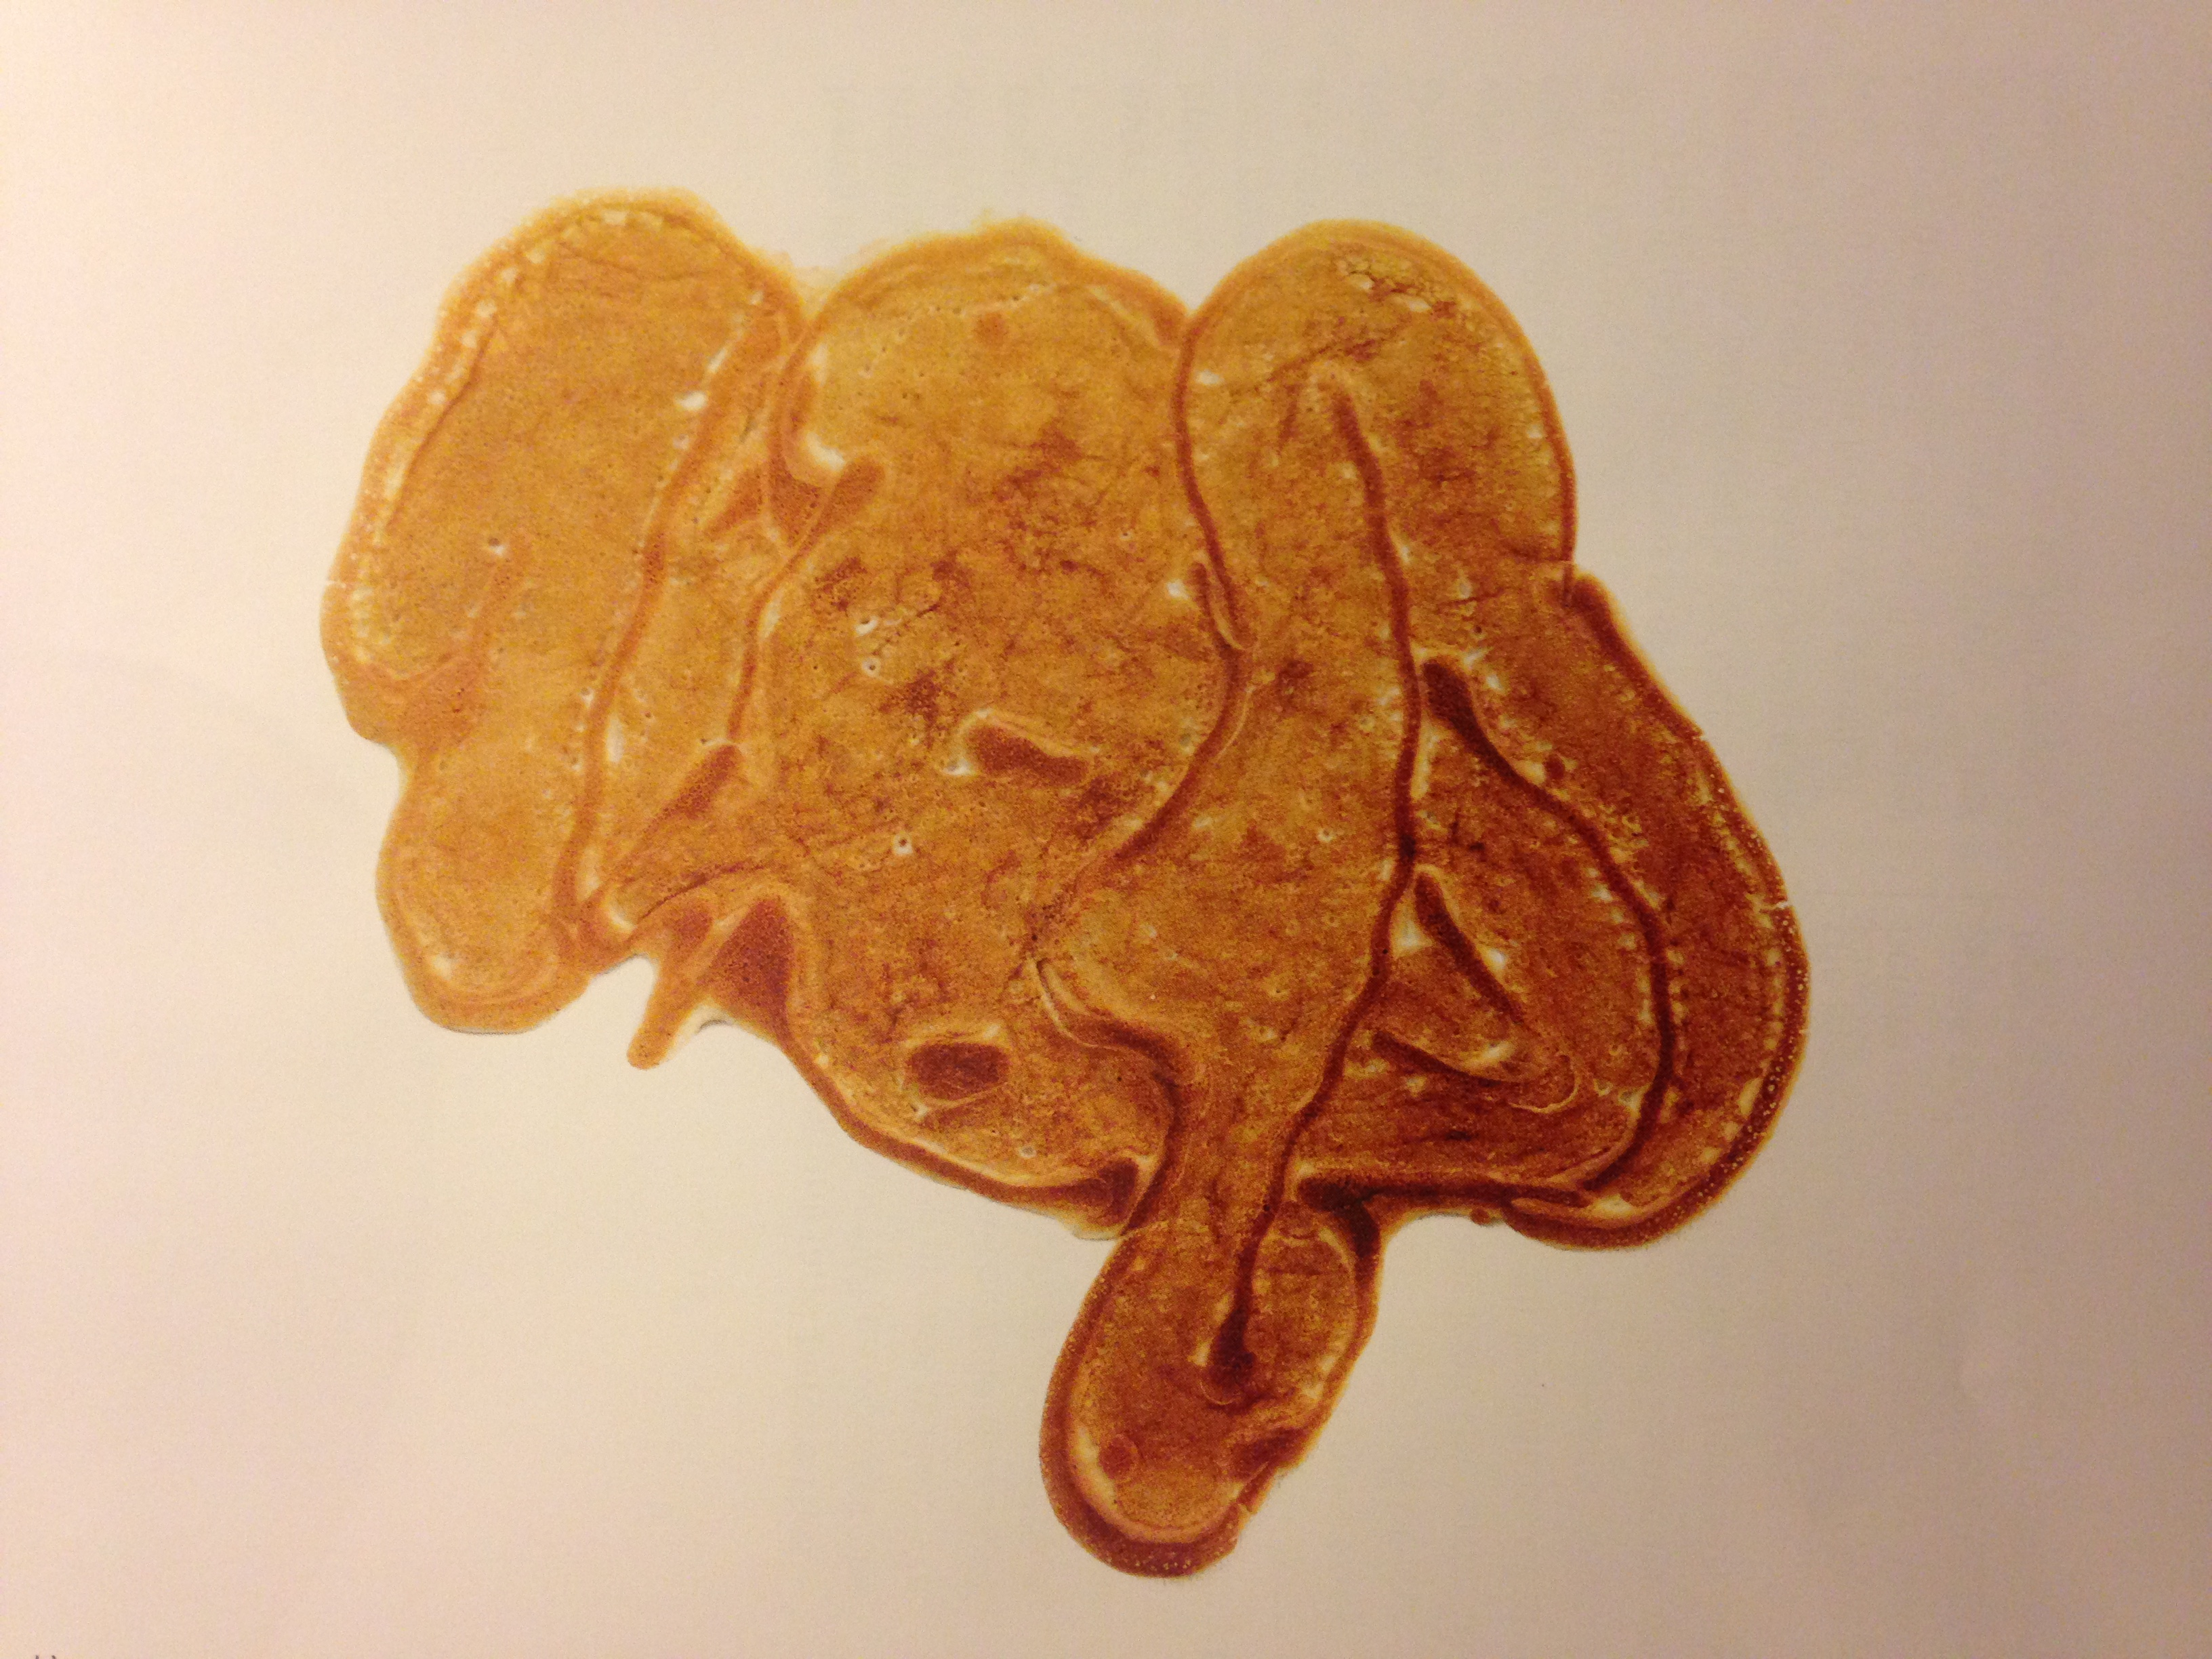 Excellent work on the pancakes, LP.